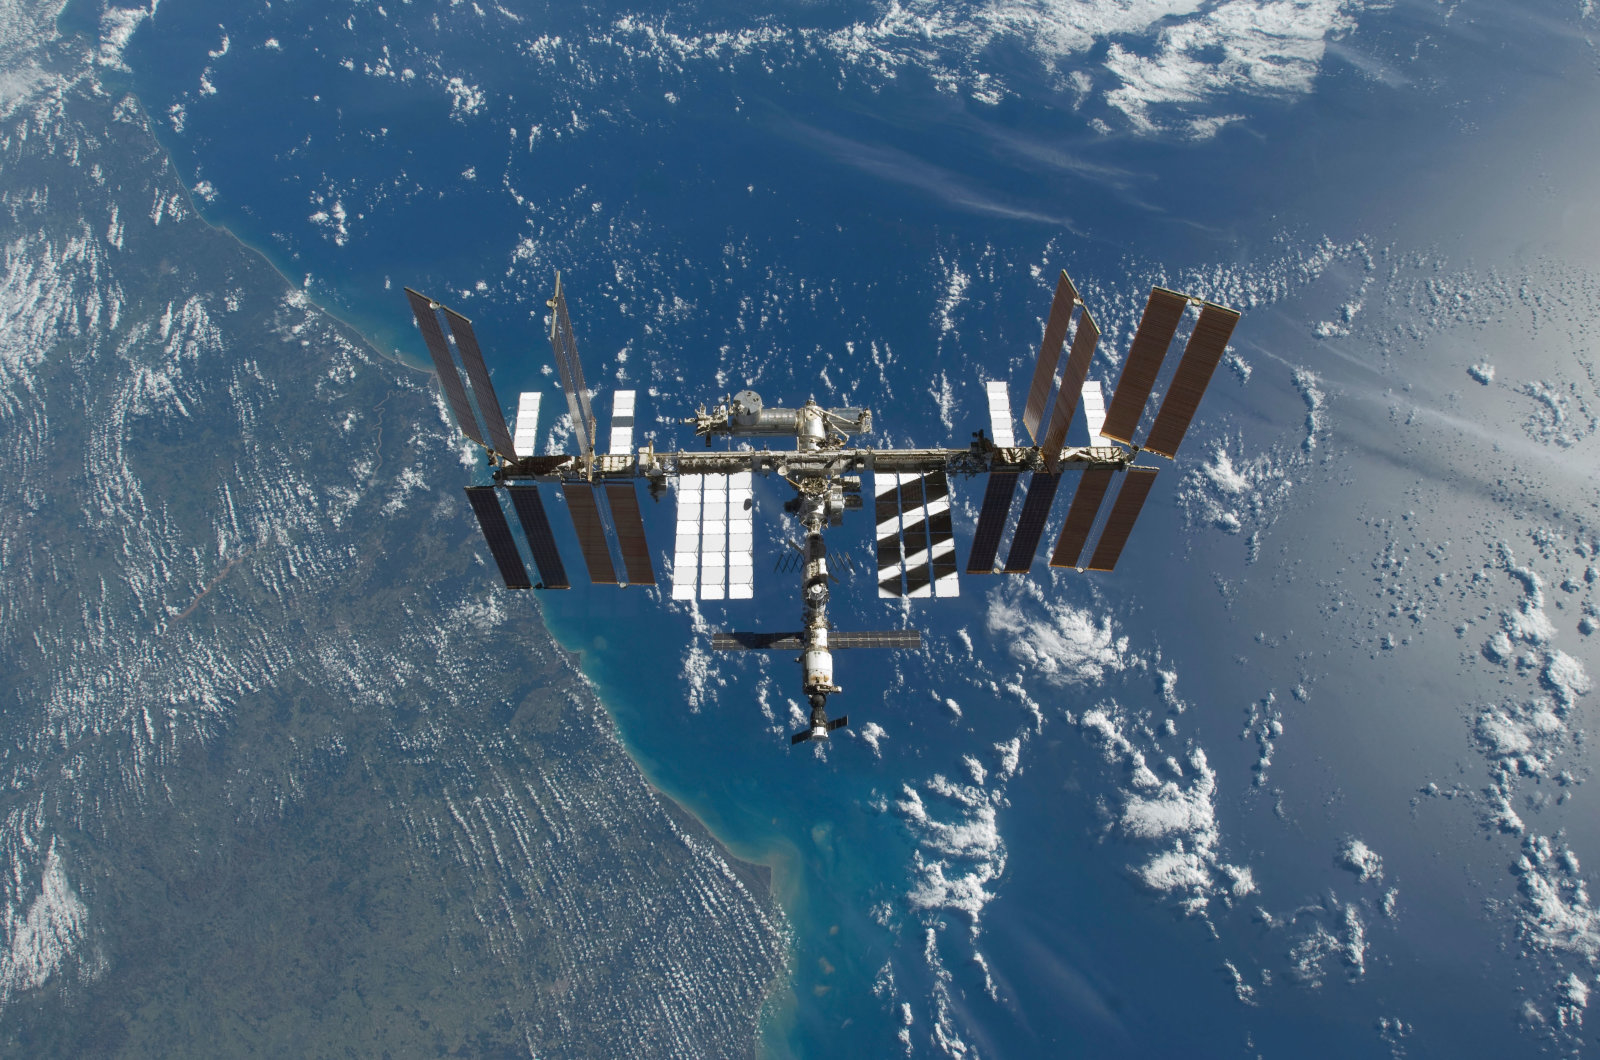 BH6TDA November 25, 2009 - The International Space Station in orbit above the Earth.